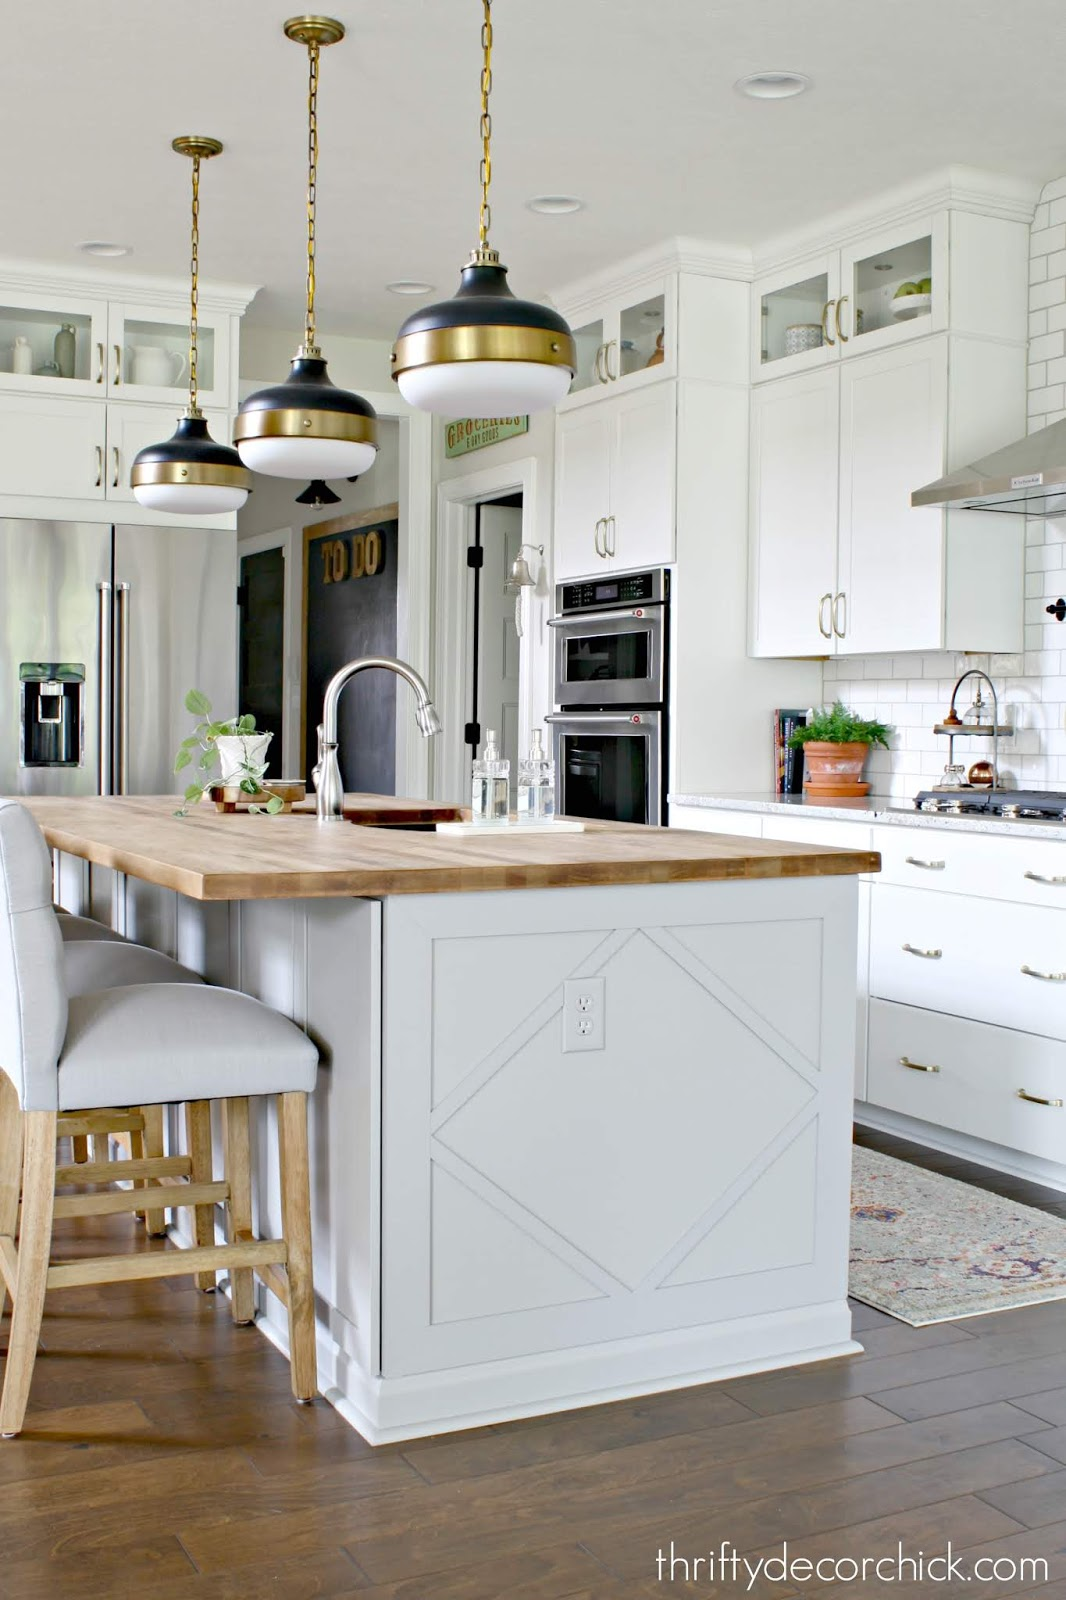 How To Customize A Plain Kitchen Island With Side Panels From Thrifty Decor Chick